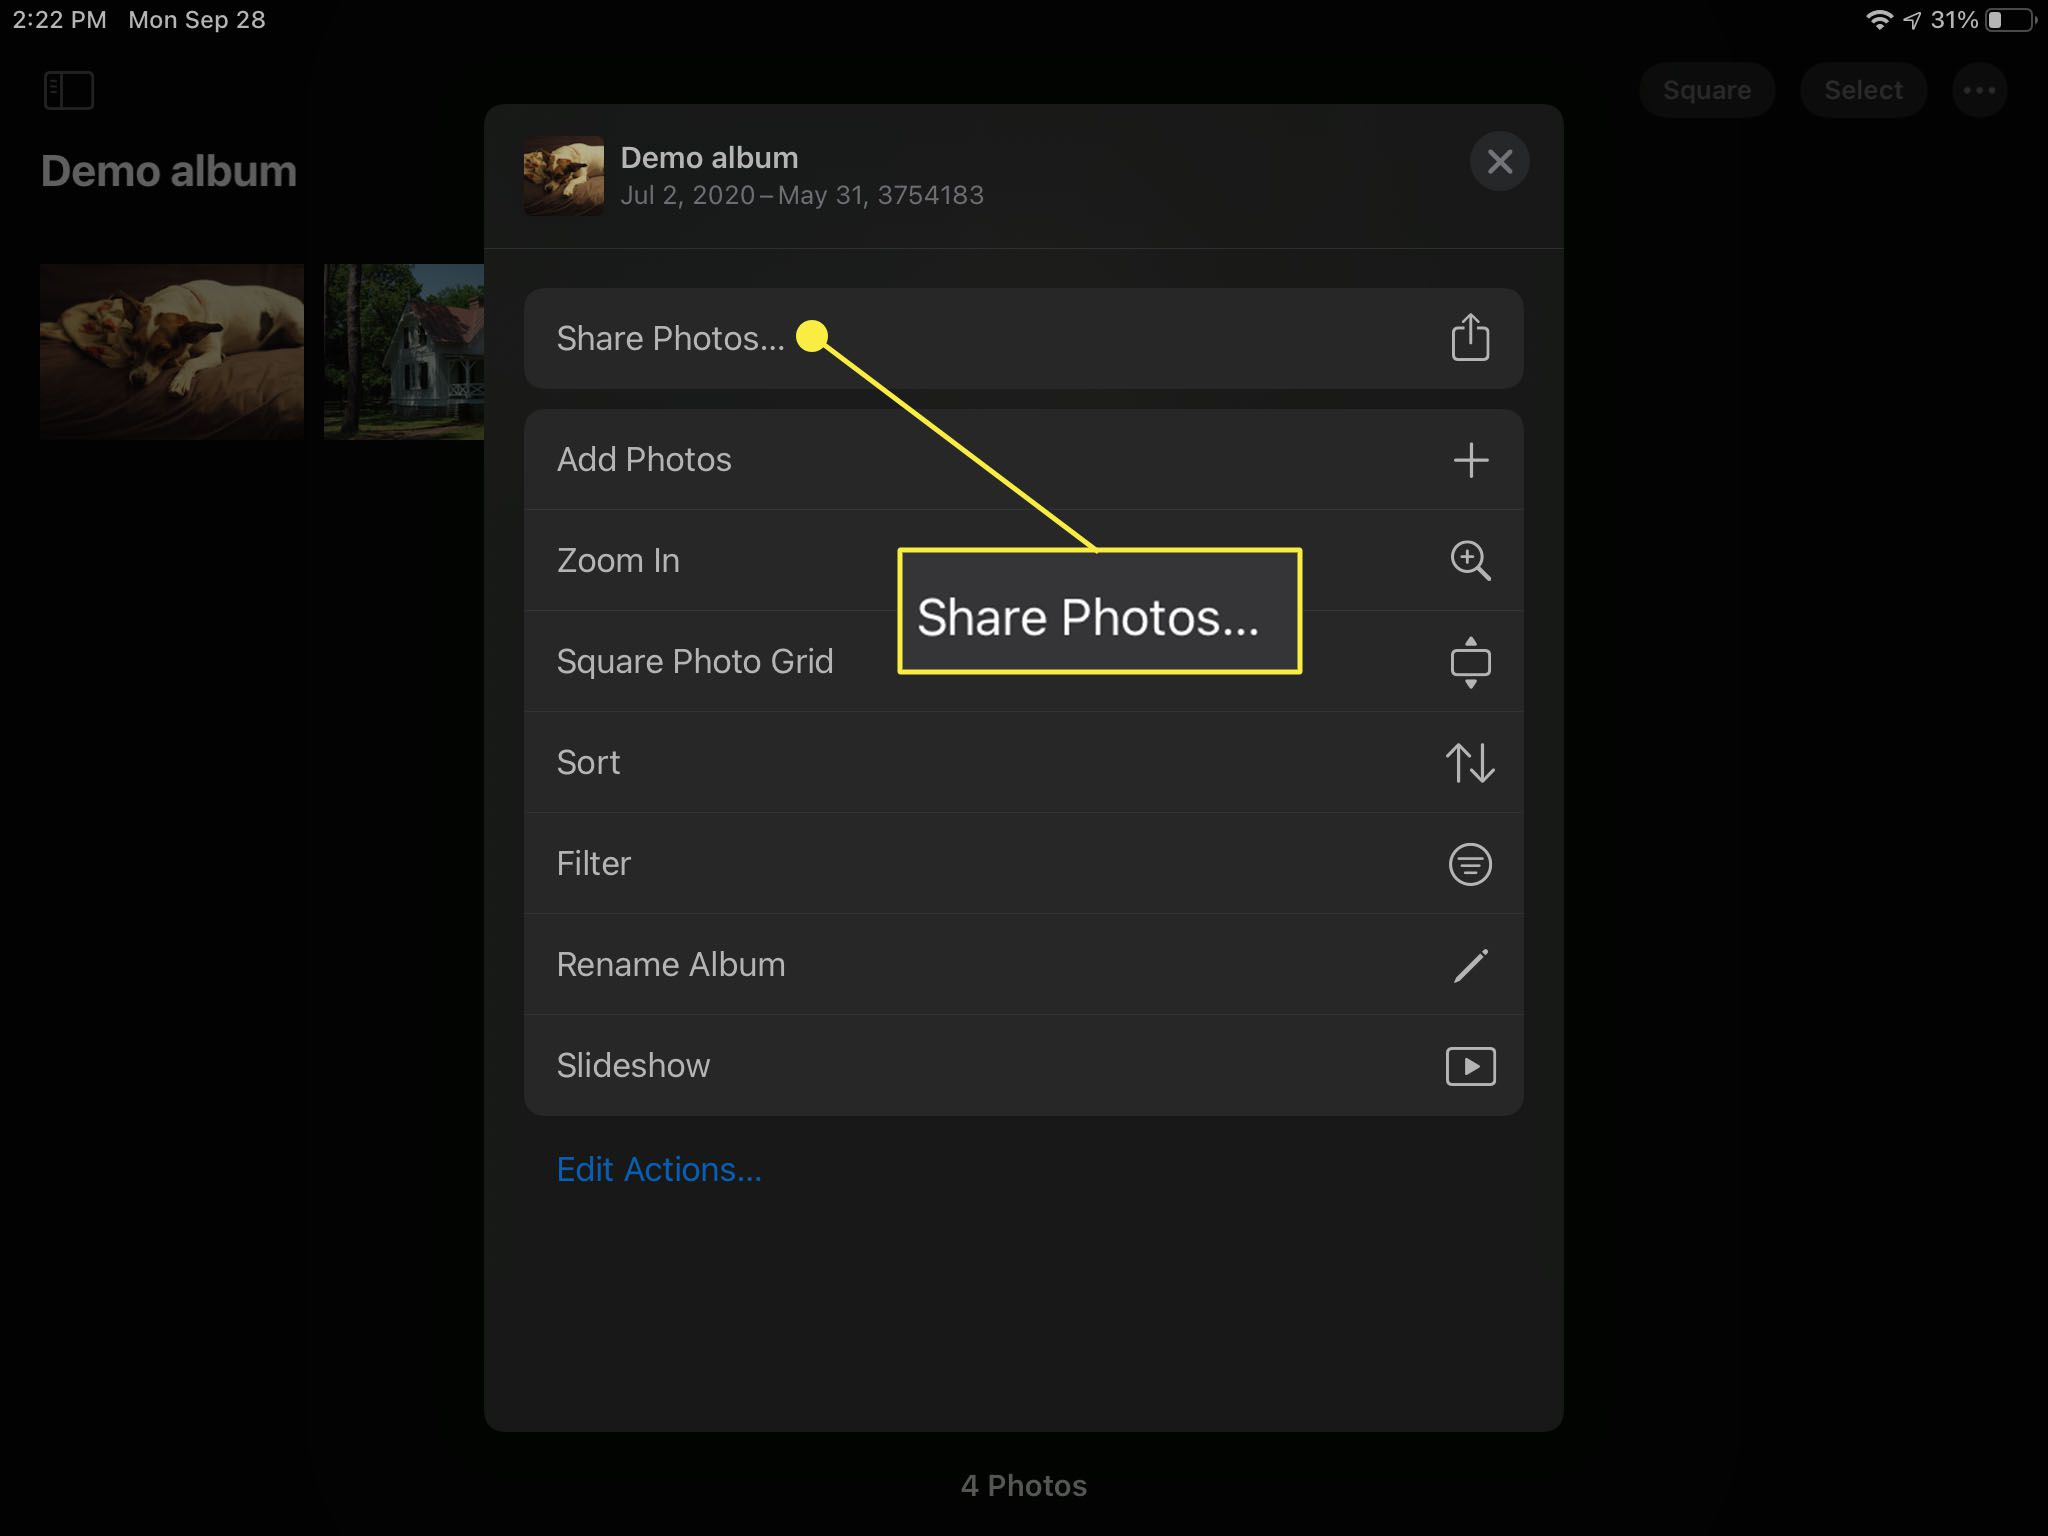 Sharing a photo in the Photos app